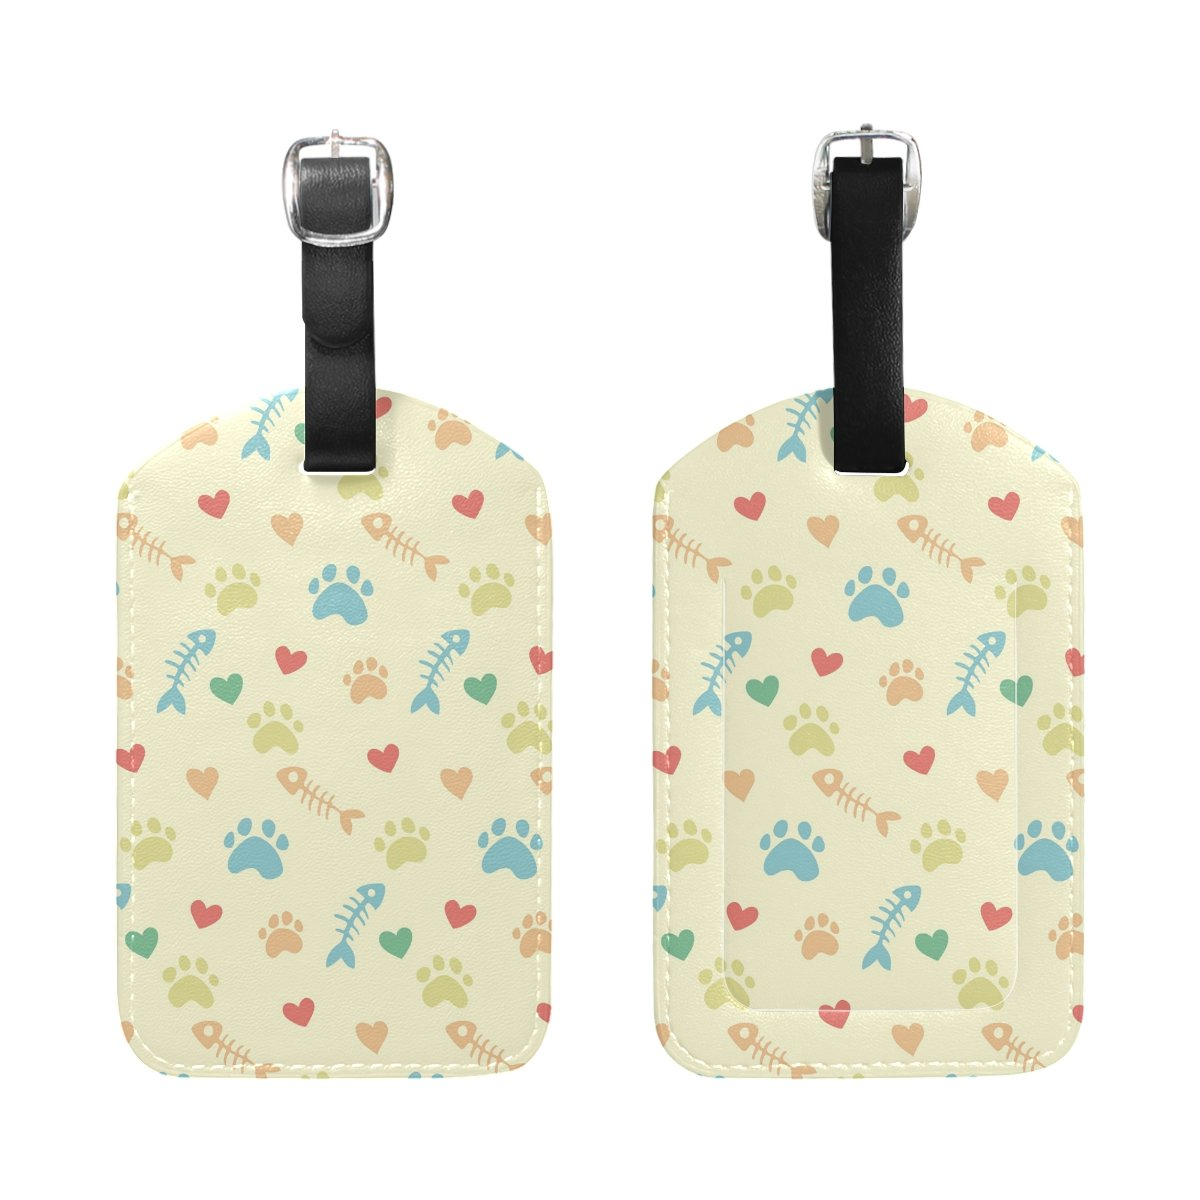 1Pcs Saobao Travel Luggage Tag Cats Paw Prints PU Leather Baggage Suitcase Travel ID Bag Tag